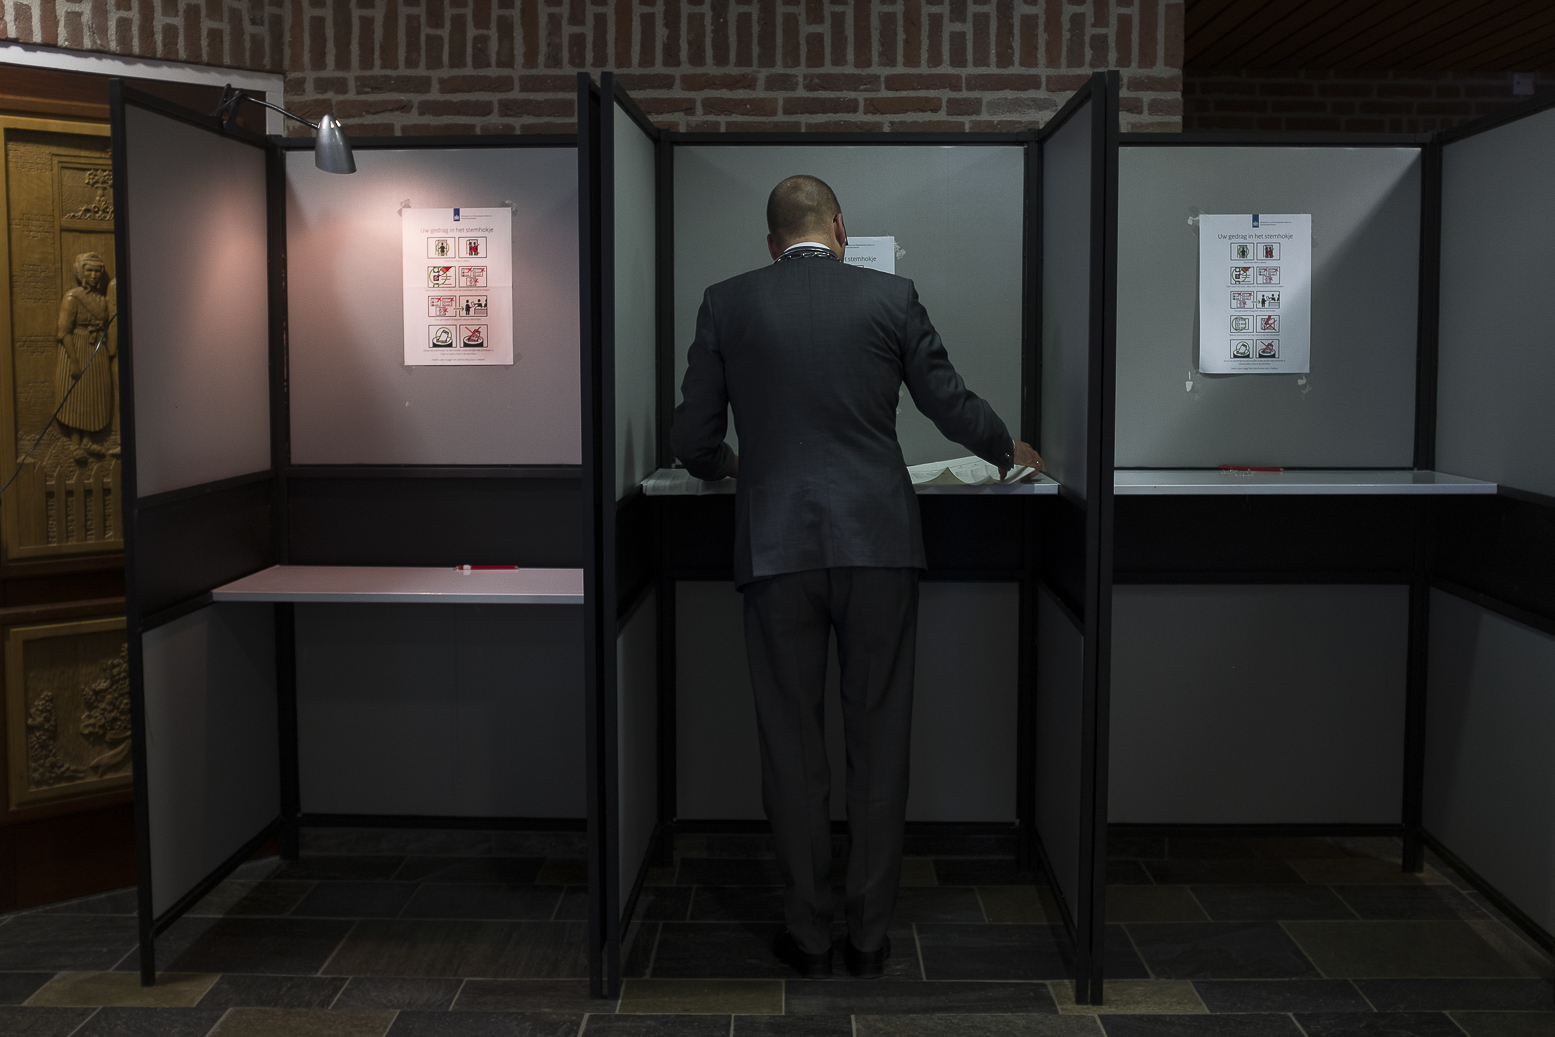 The mayor of Staphorst casts his ballot for the Dutch general elections at a polling station set up in the townhall in Staphorst, Netherlands, Wednesday, March 15, 2017.